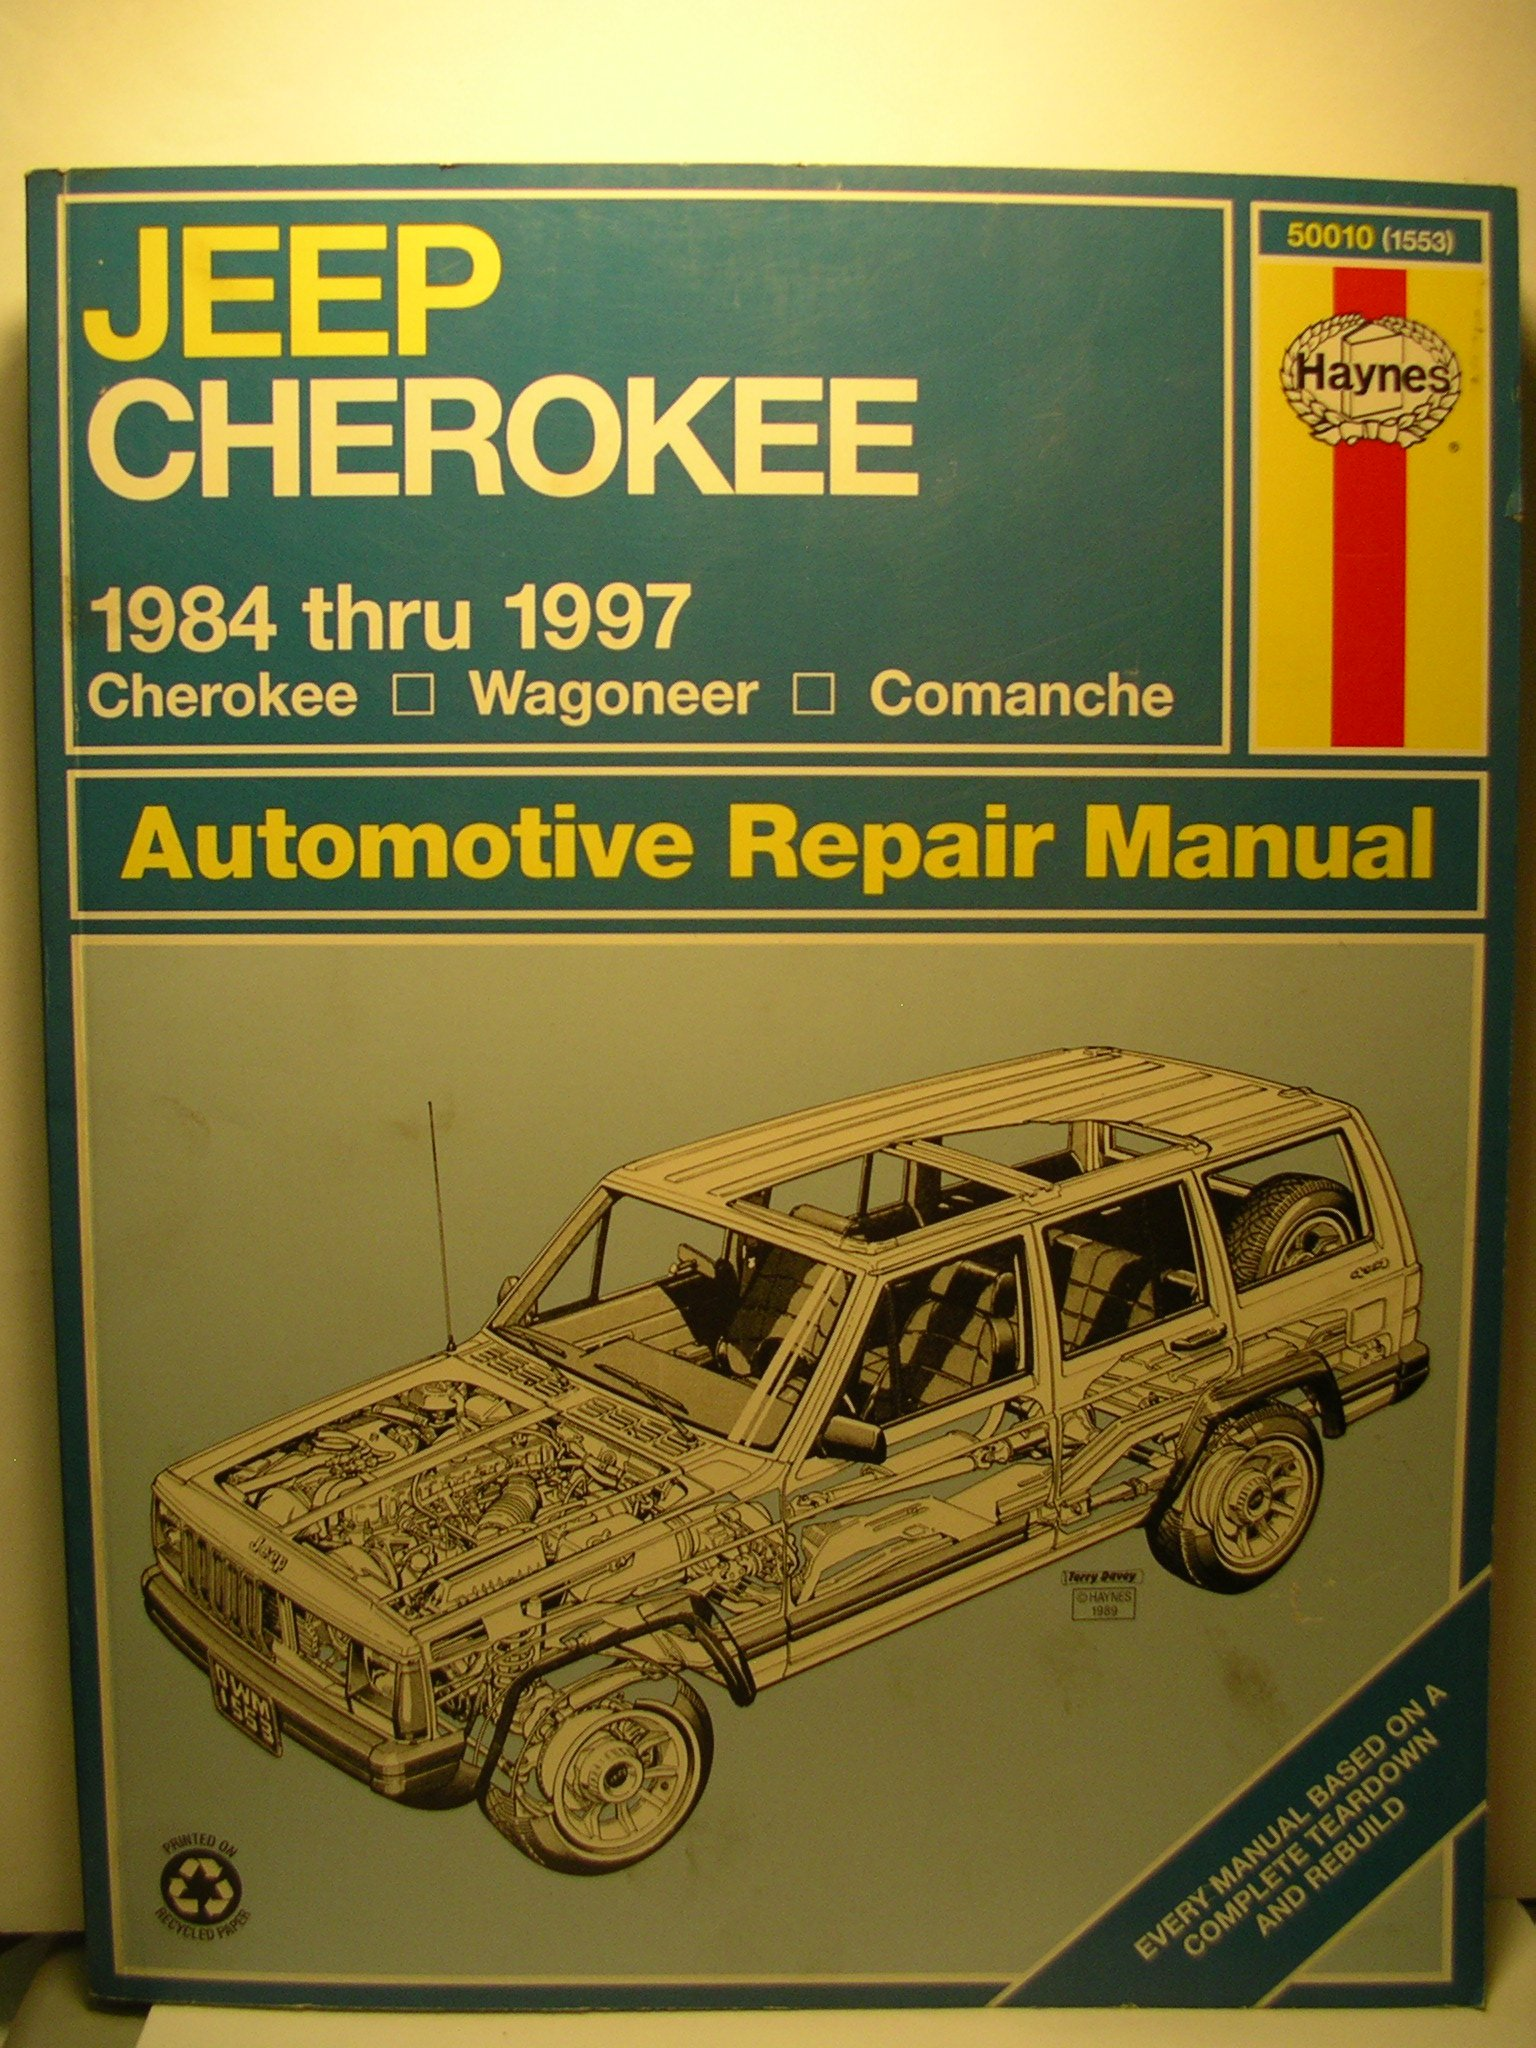 Jeep Cherokee, Wagoneer and Comanche (1984-1997) Automotive Repair Manual  (Haynes Automotive Repair Manuals): Bob Henderson, J. H. Haynes:  9781563923180: ...